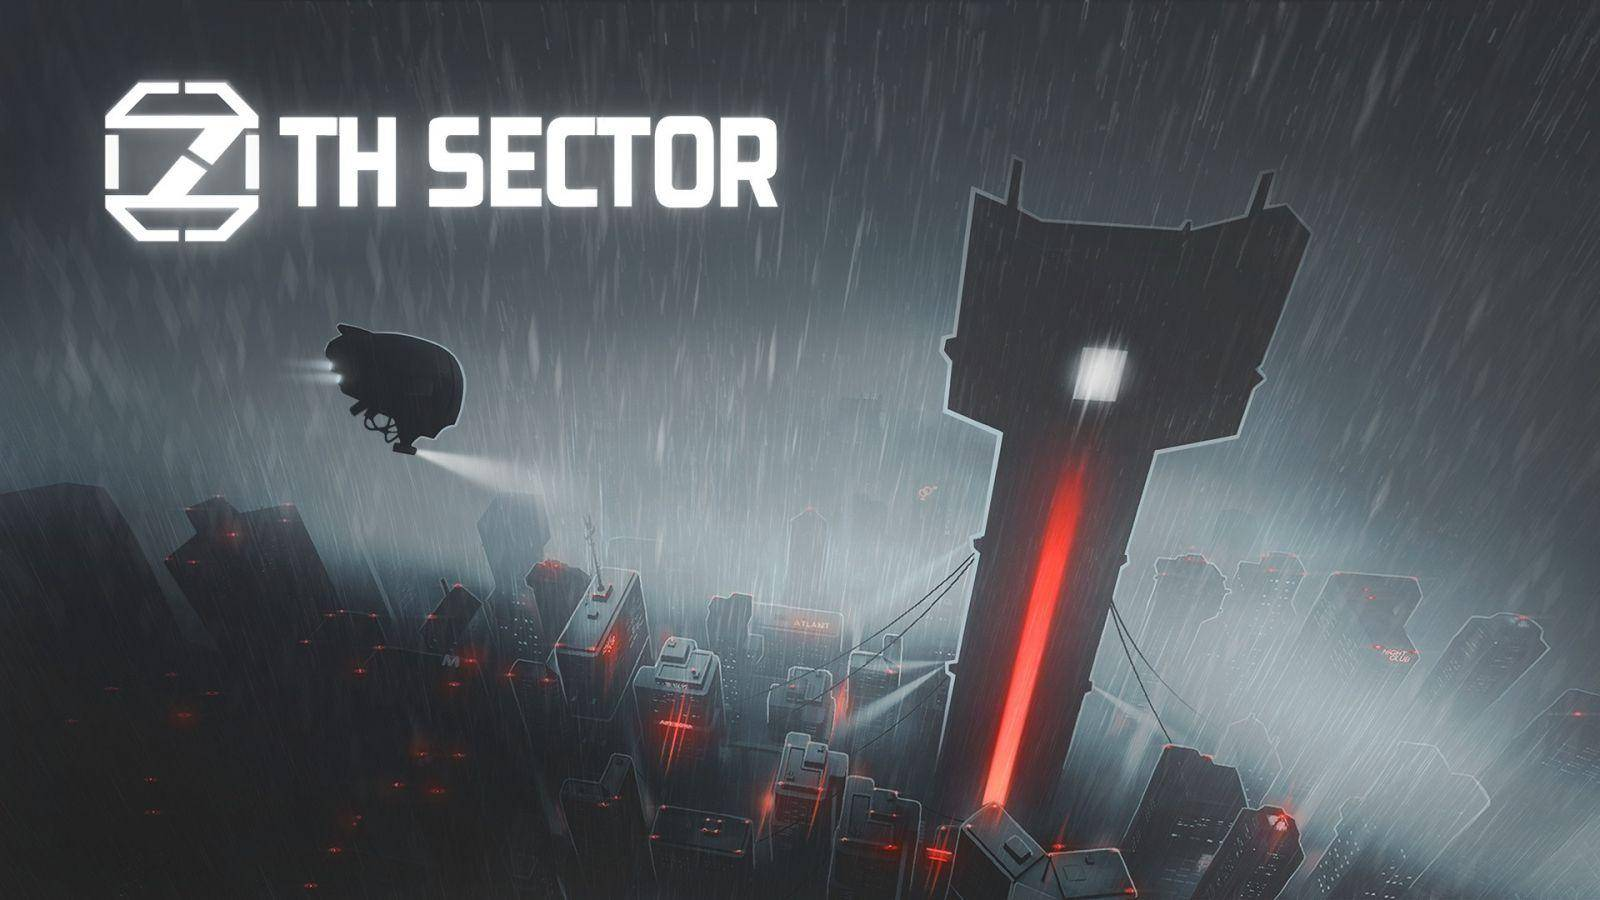 Reseña: 7th Sector